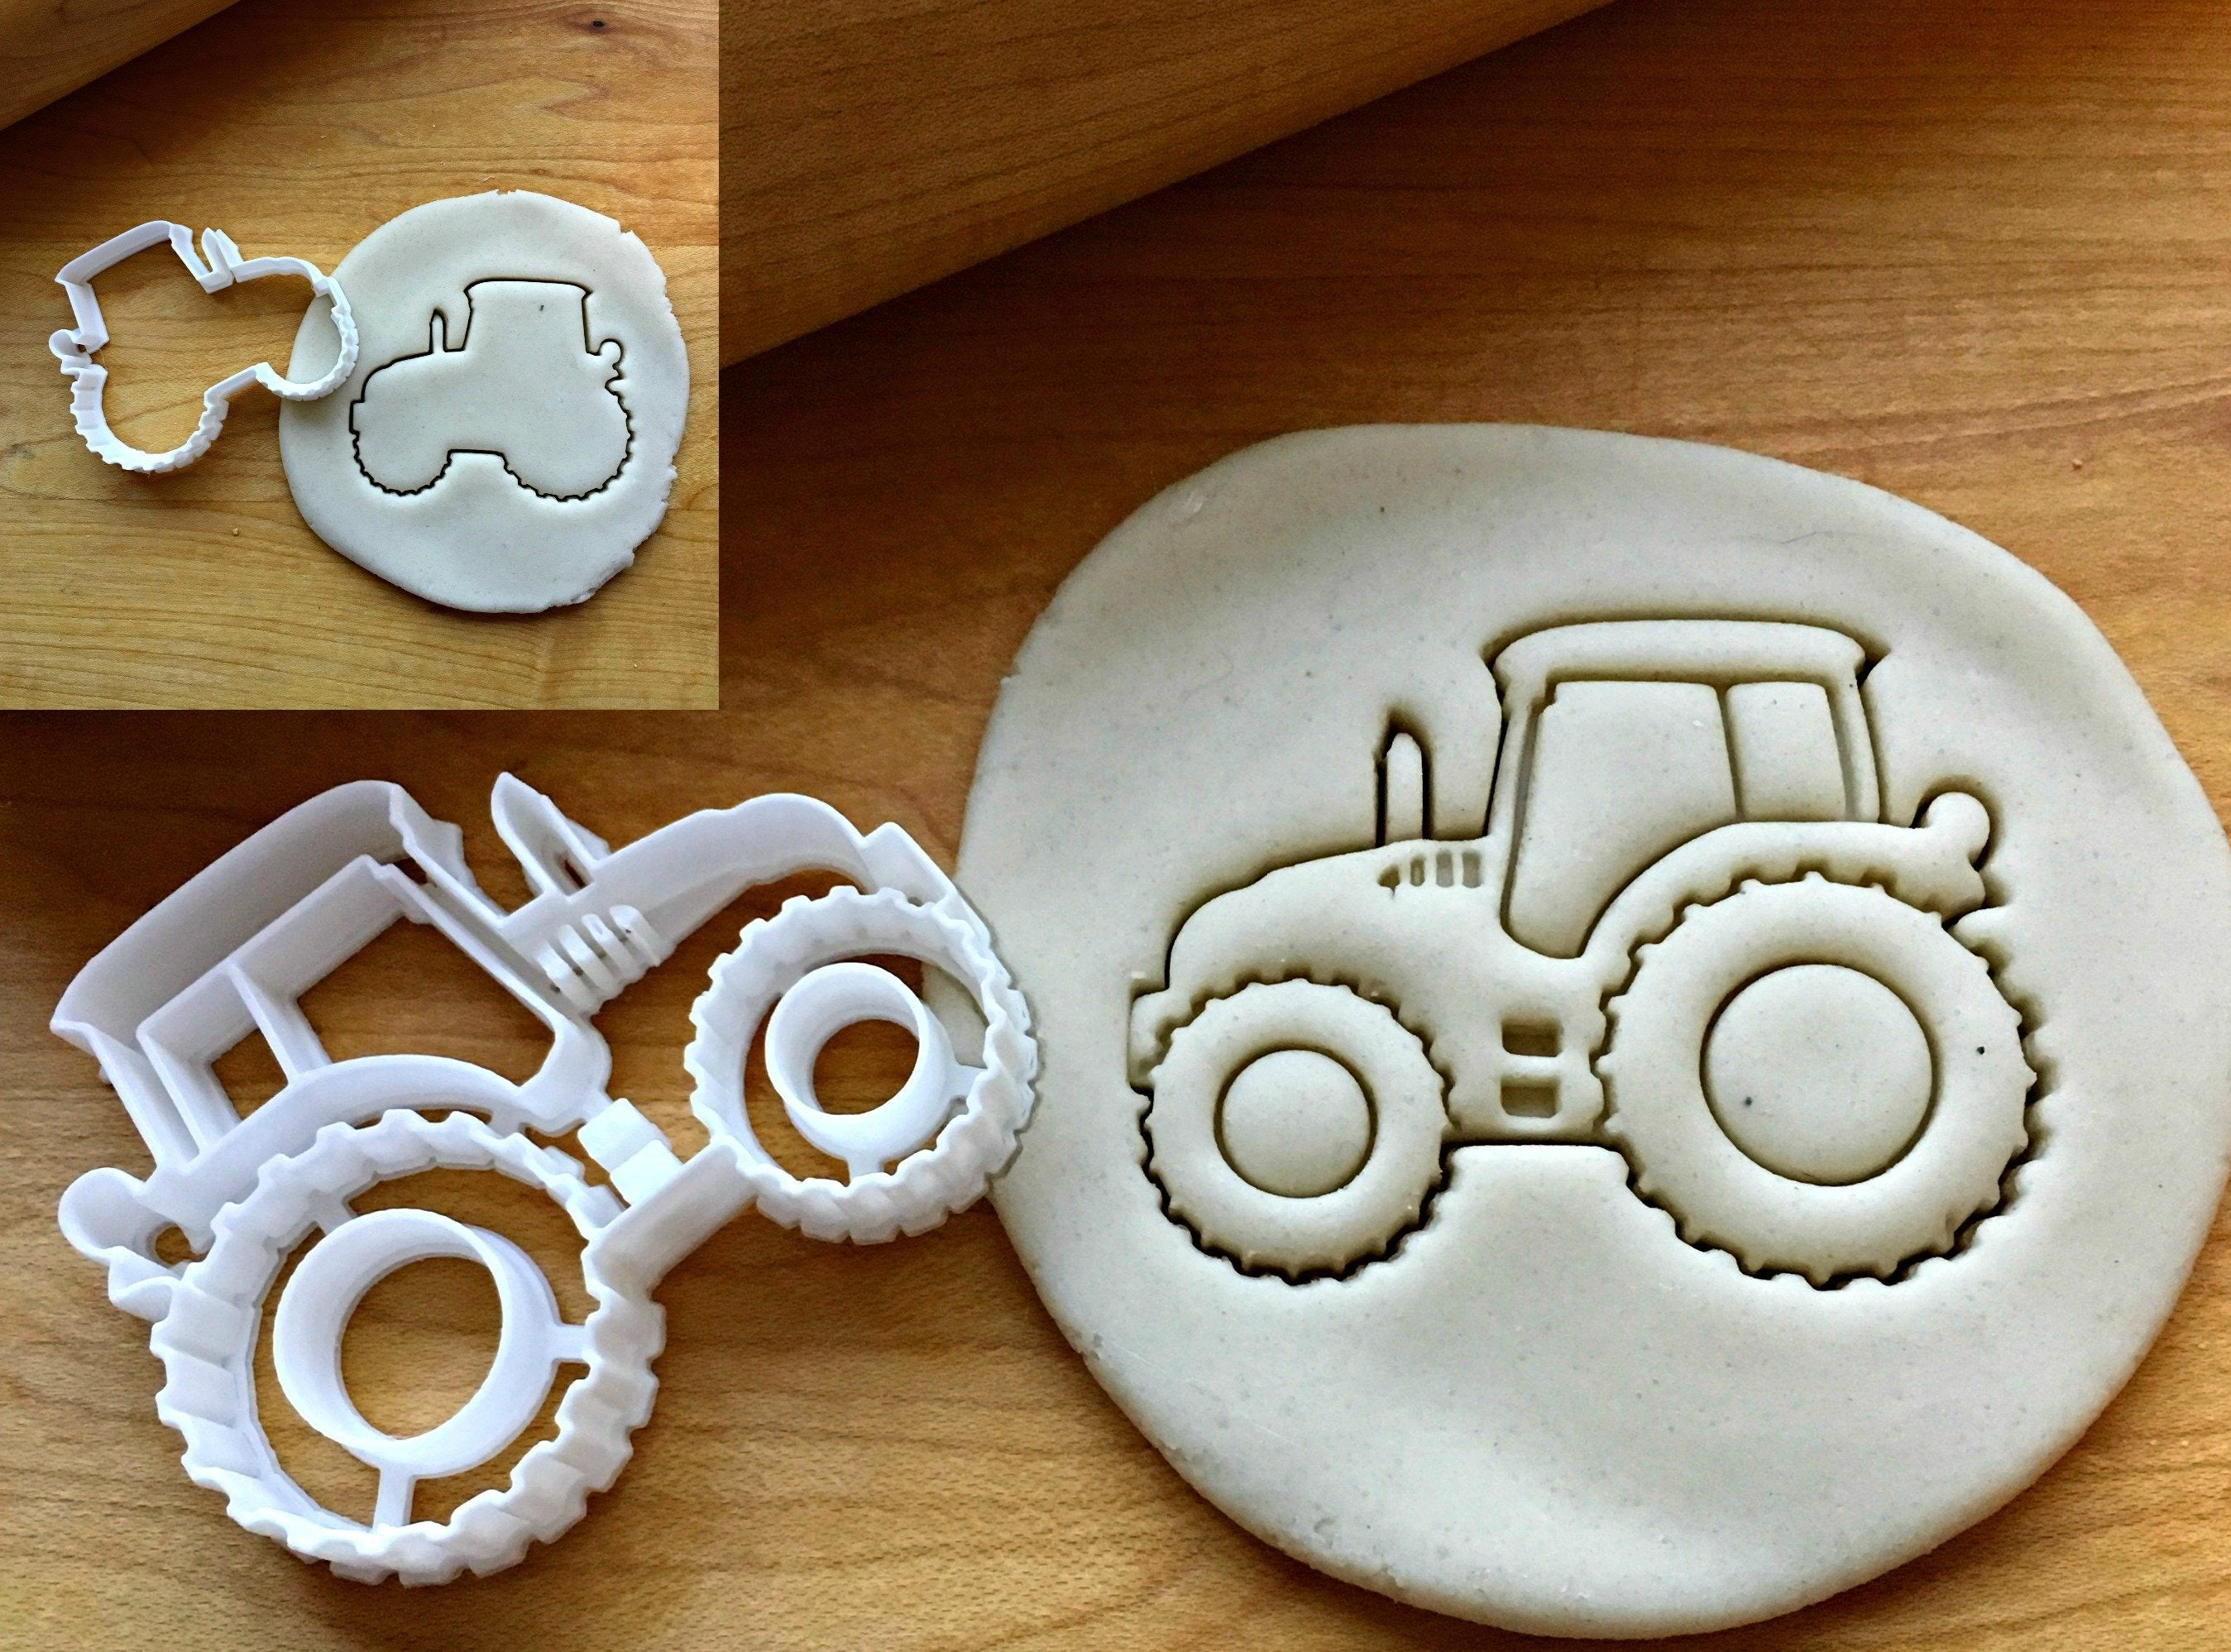 Set of 2 Modern Tractor Cookie Cutters/Dishwasher Safe